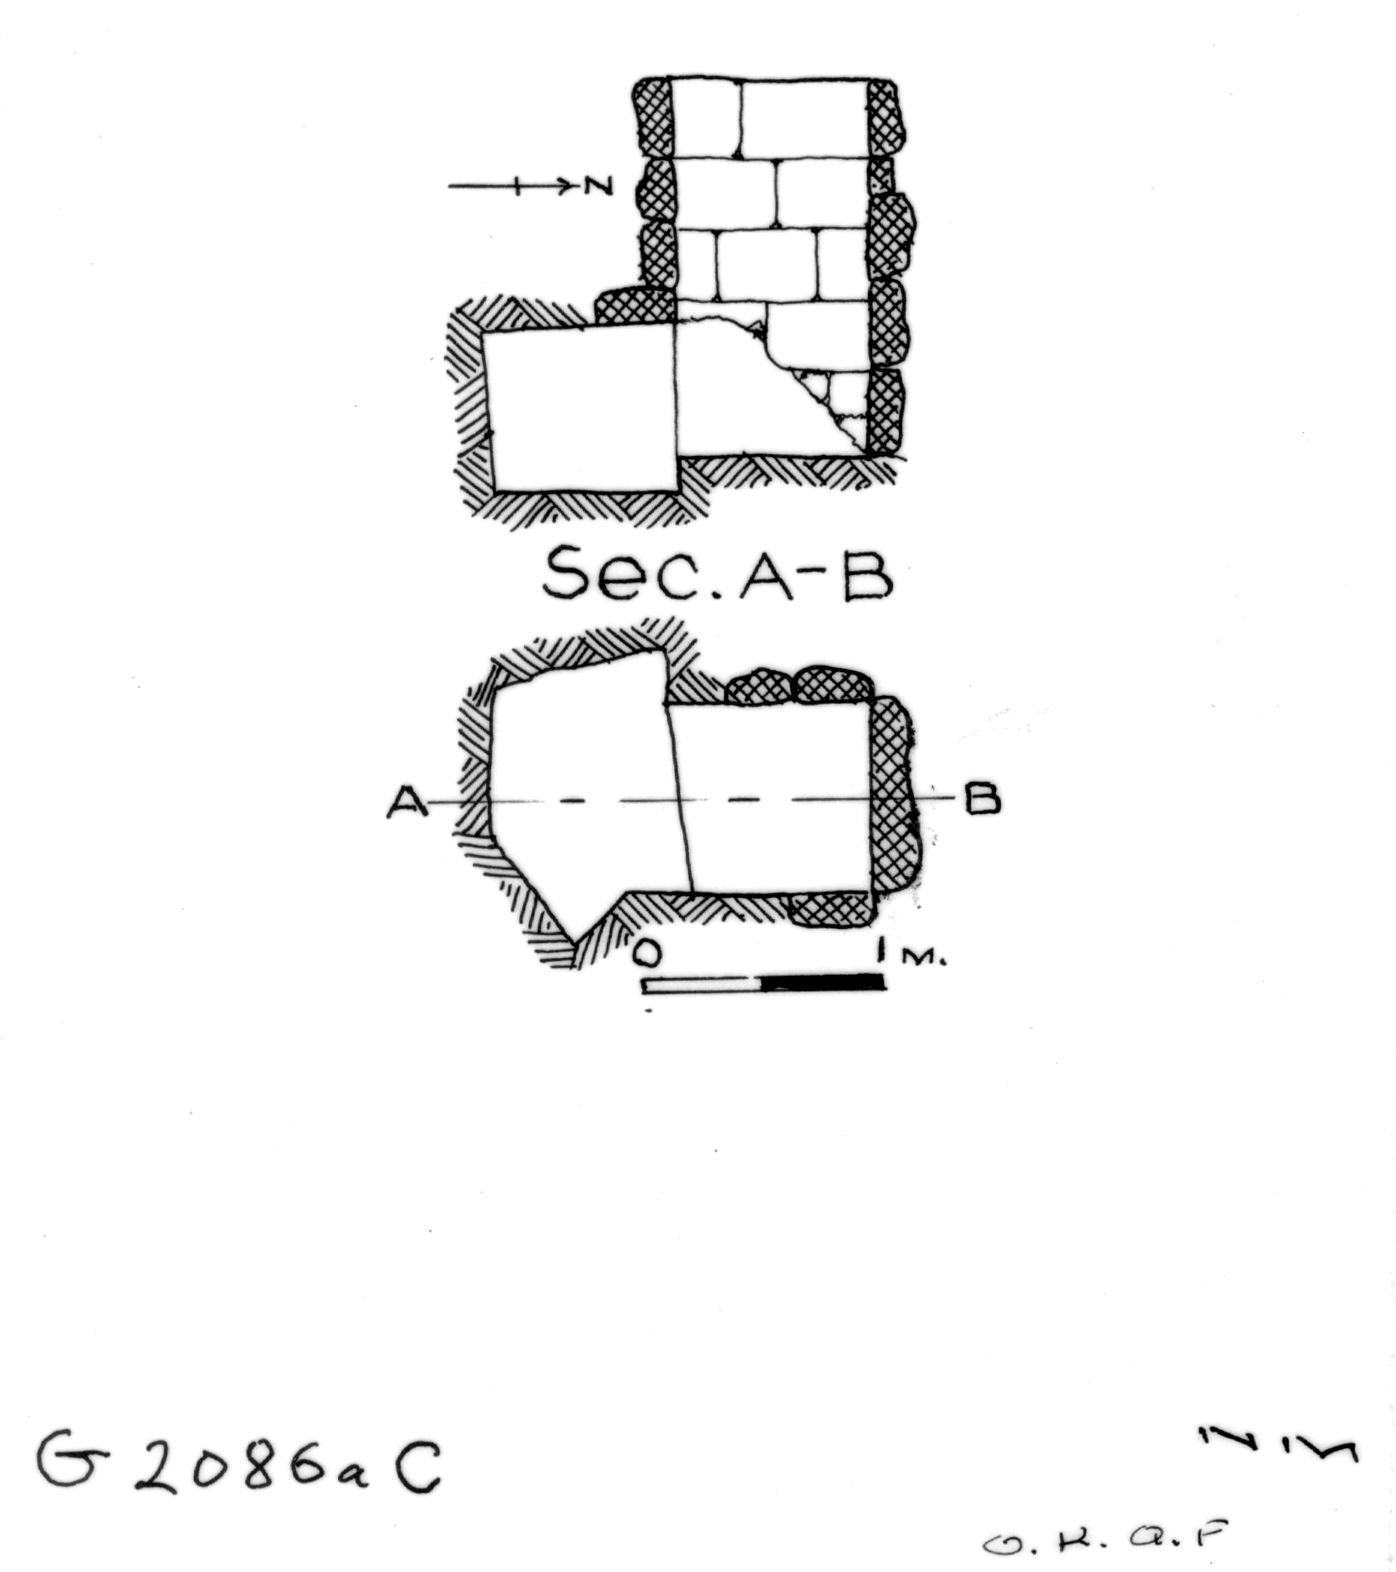 Maps and plans: G 2086a, Shaft C